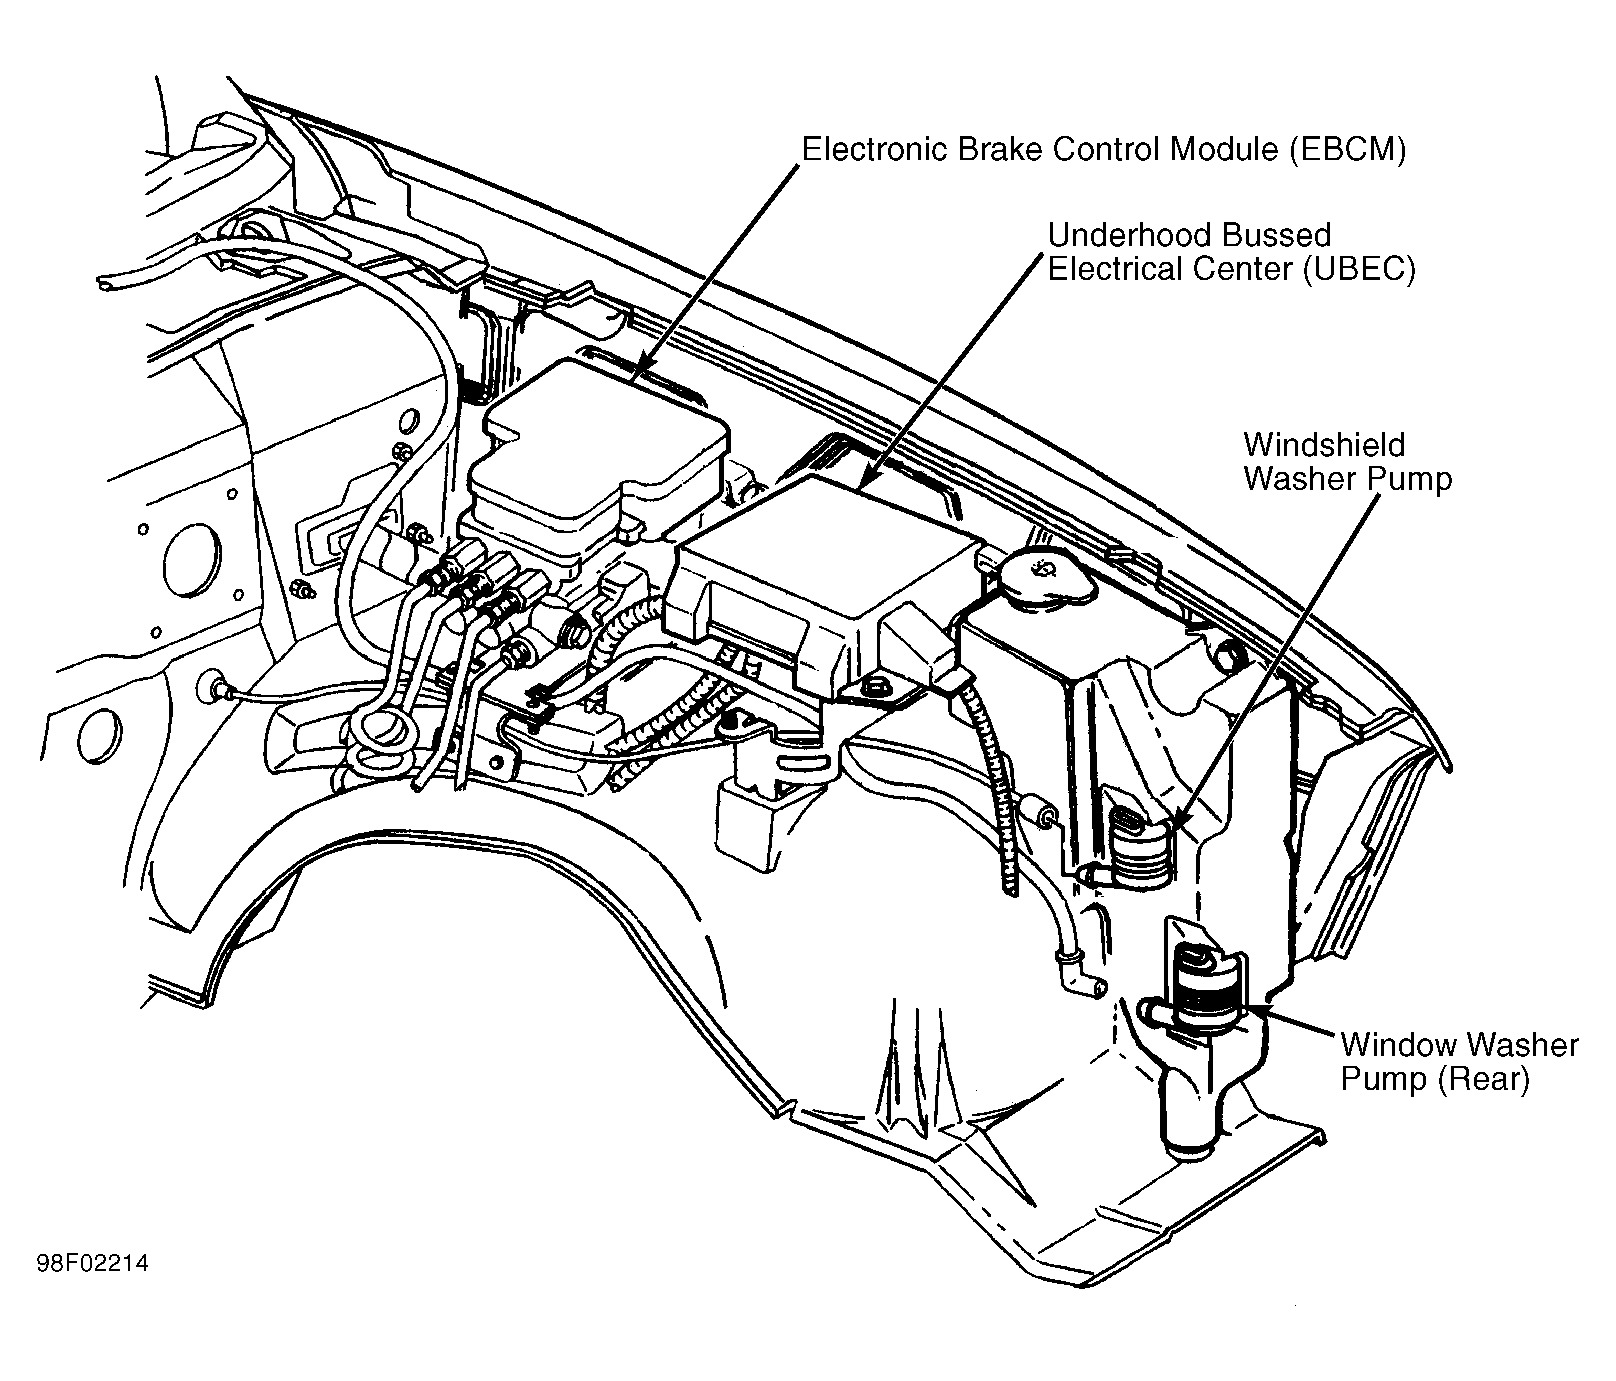 original 1998 gmc sonoma fuse box location passenger power window will not 1995 gmc sonoma fuse diagram at bayanpartner.co